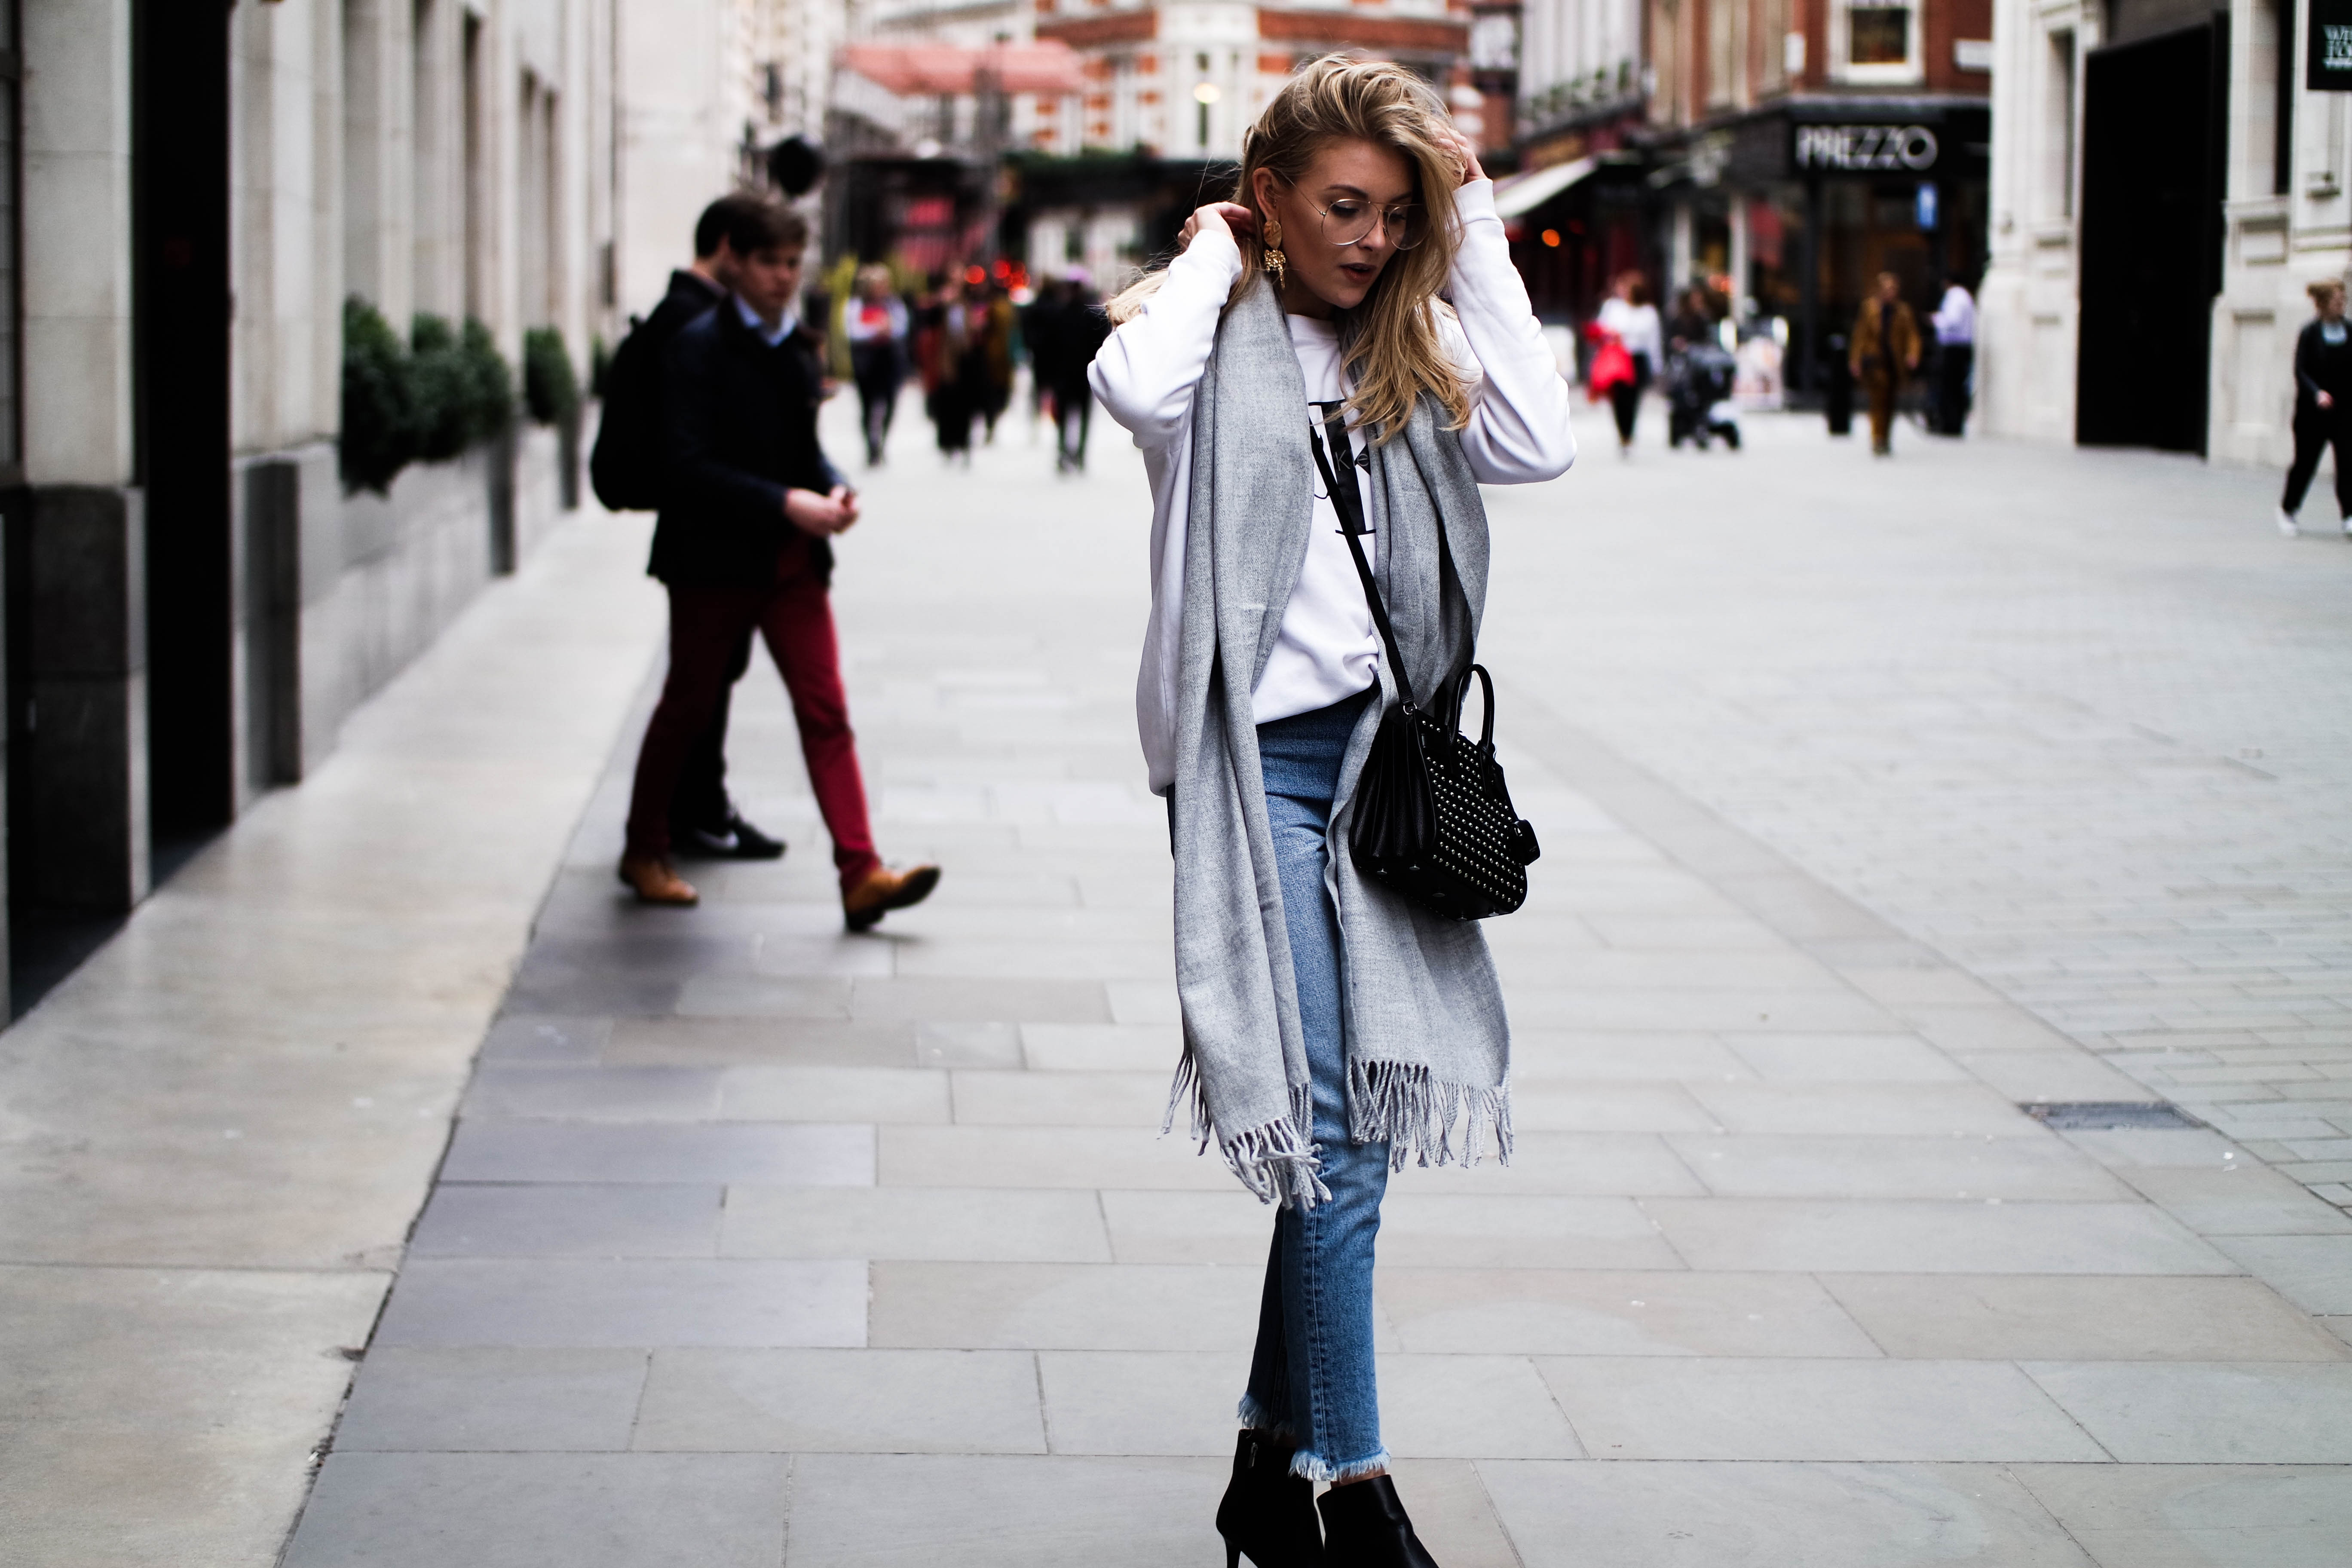 Lfw Day 4 Comfy Casual London Street Style Love Style Mindfulness Fashion Personal